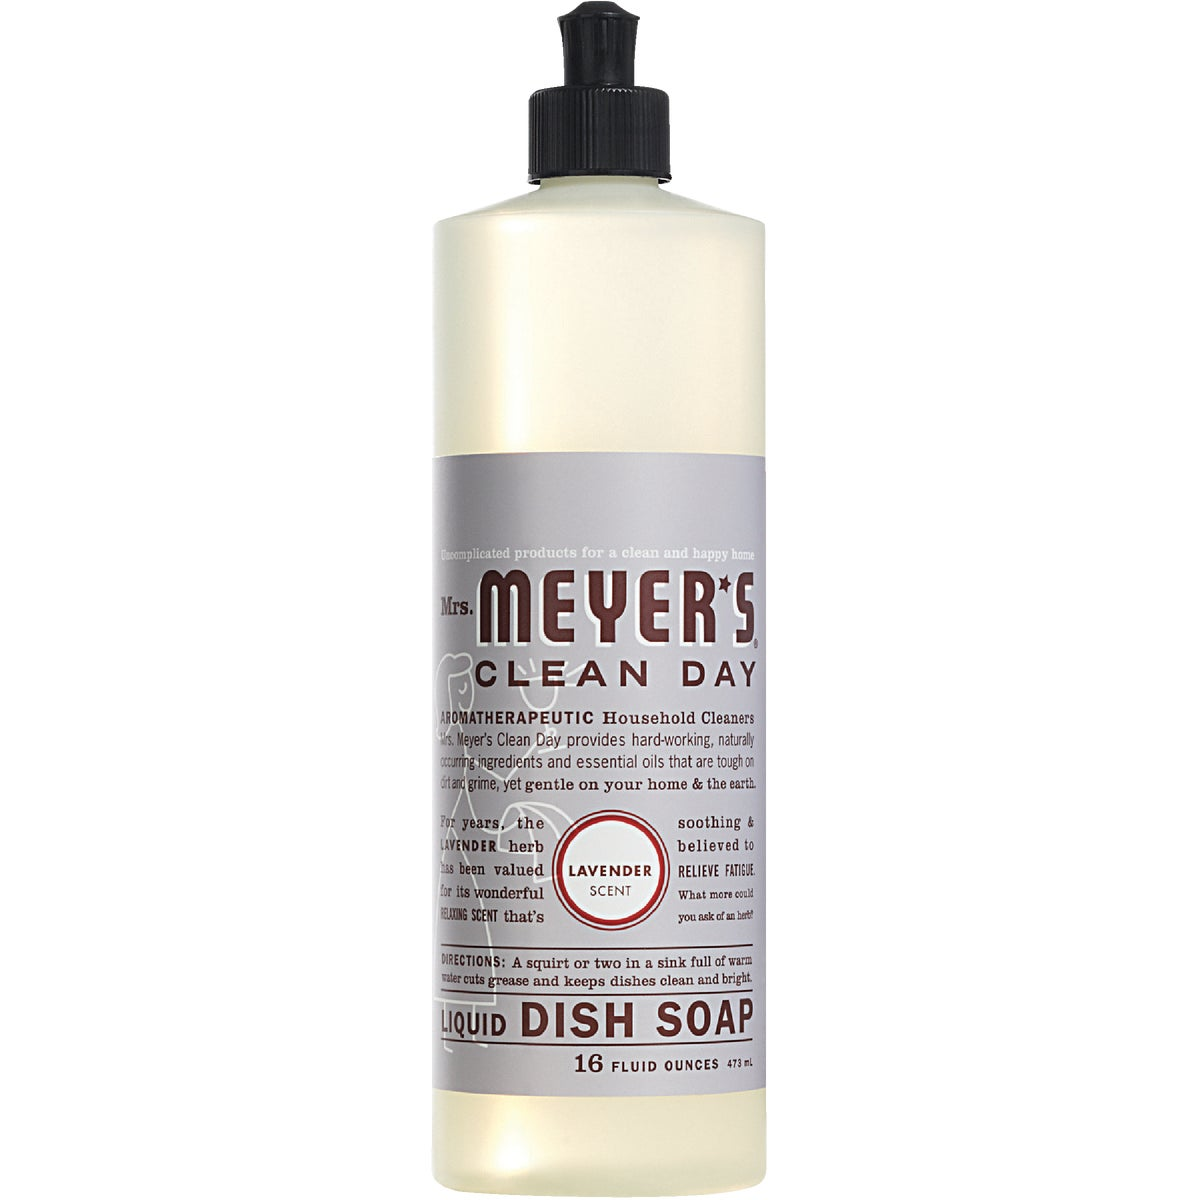 16OZ LAV LIQ DISH SOAP - 11103 by Mrs Meyers Clean Day